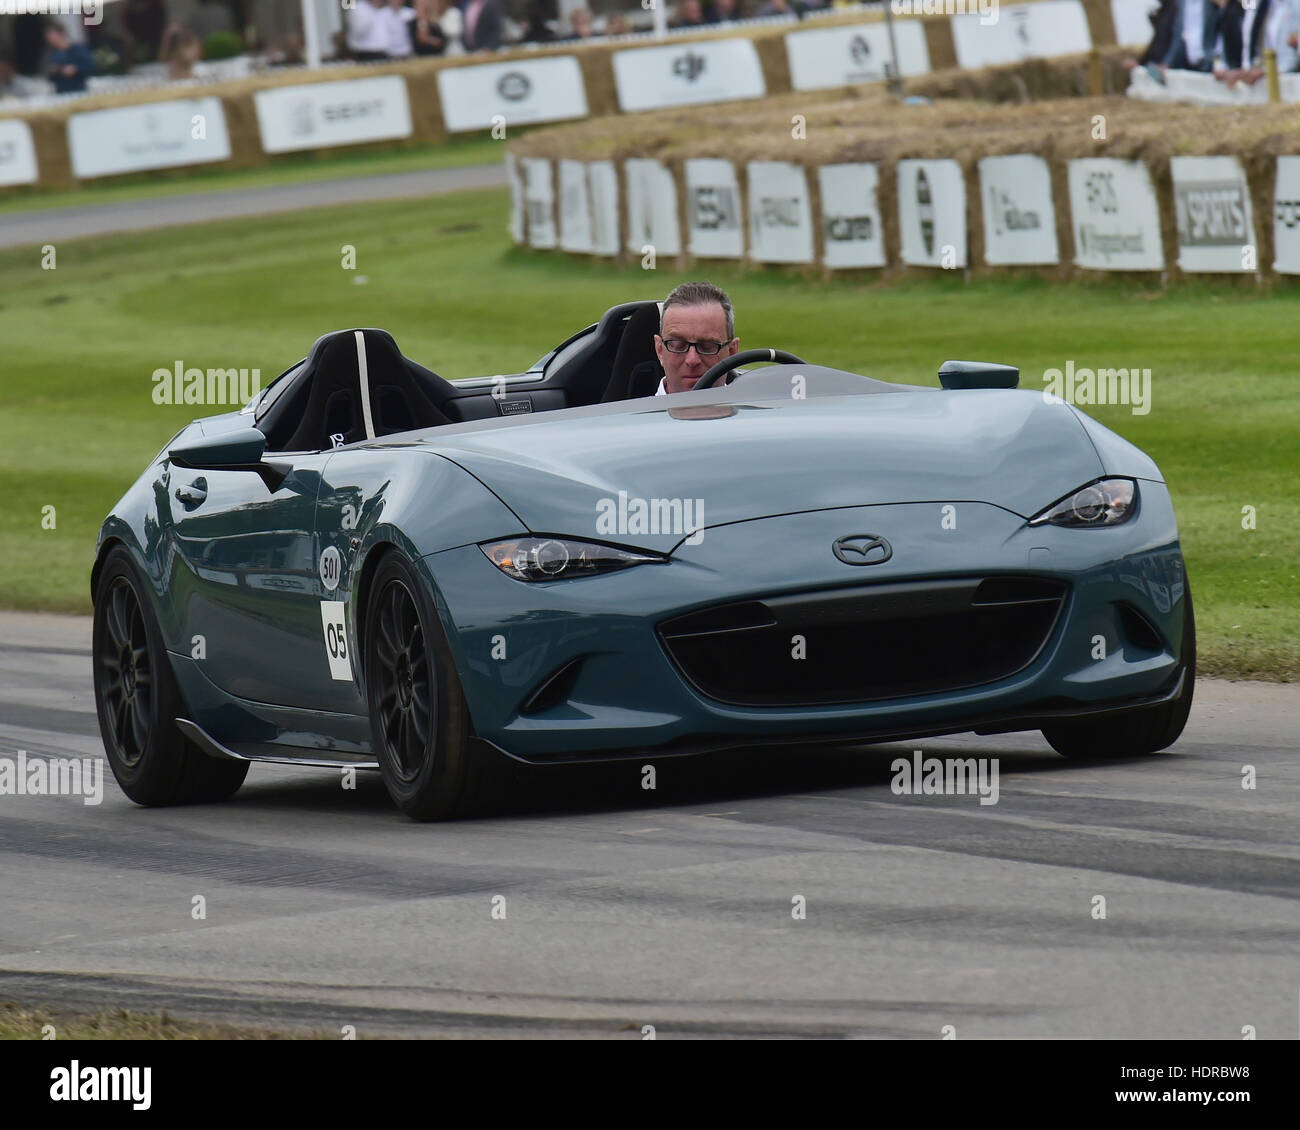 Mazda MX-5 RF, Goodwood Festival of Speed, 2016. automobiles, cars, entertainment, Festival of Speed, FoS, Full - Stock Image